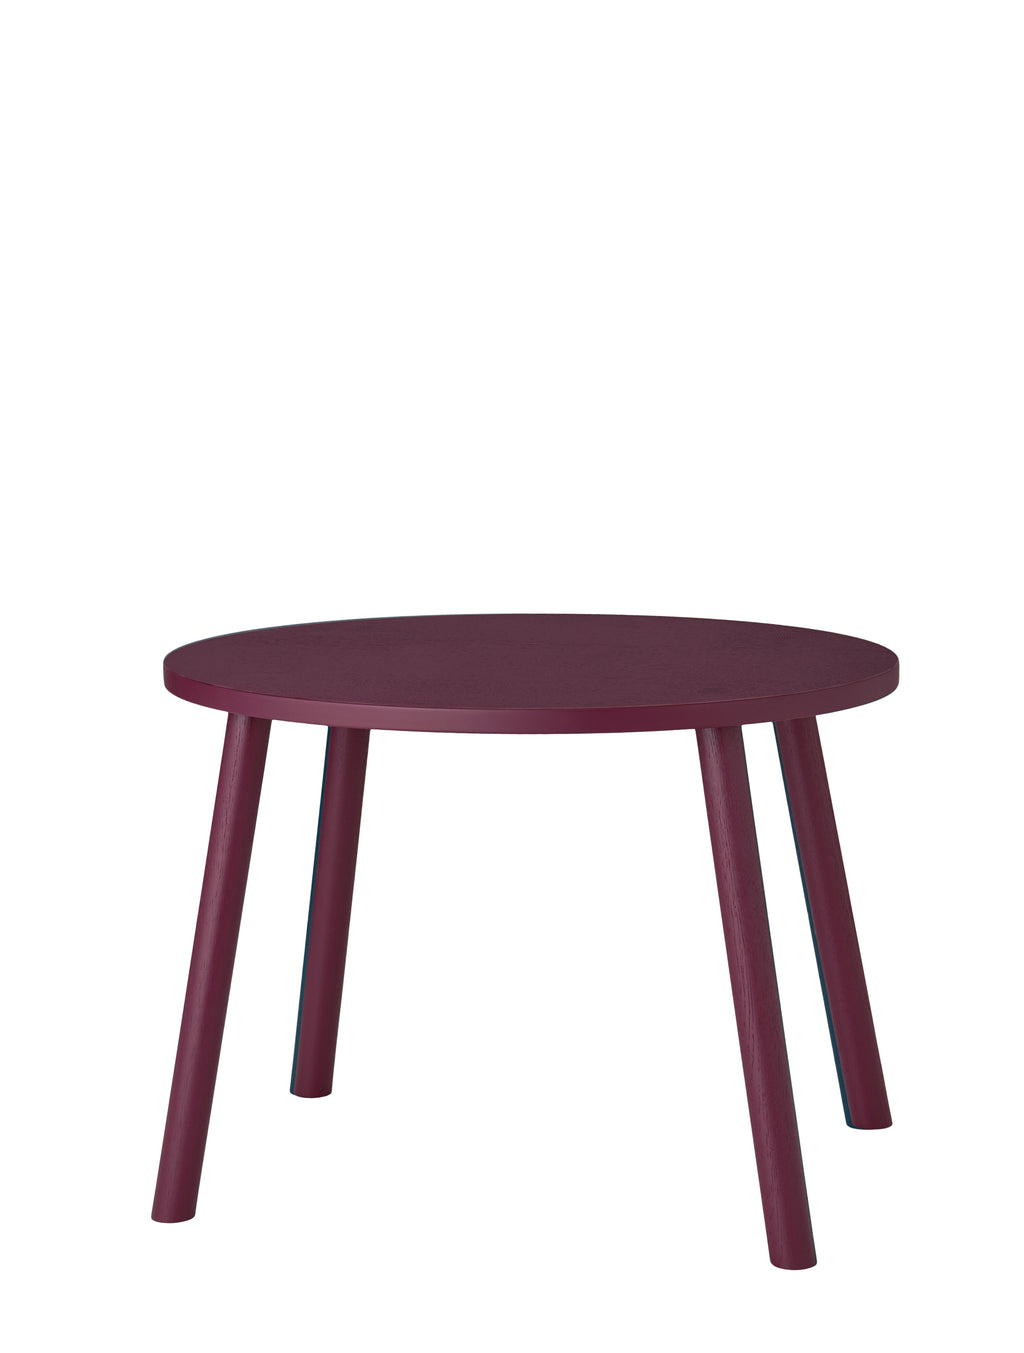 MOUSE TABLE // BURGUNDY